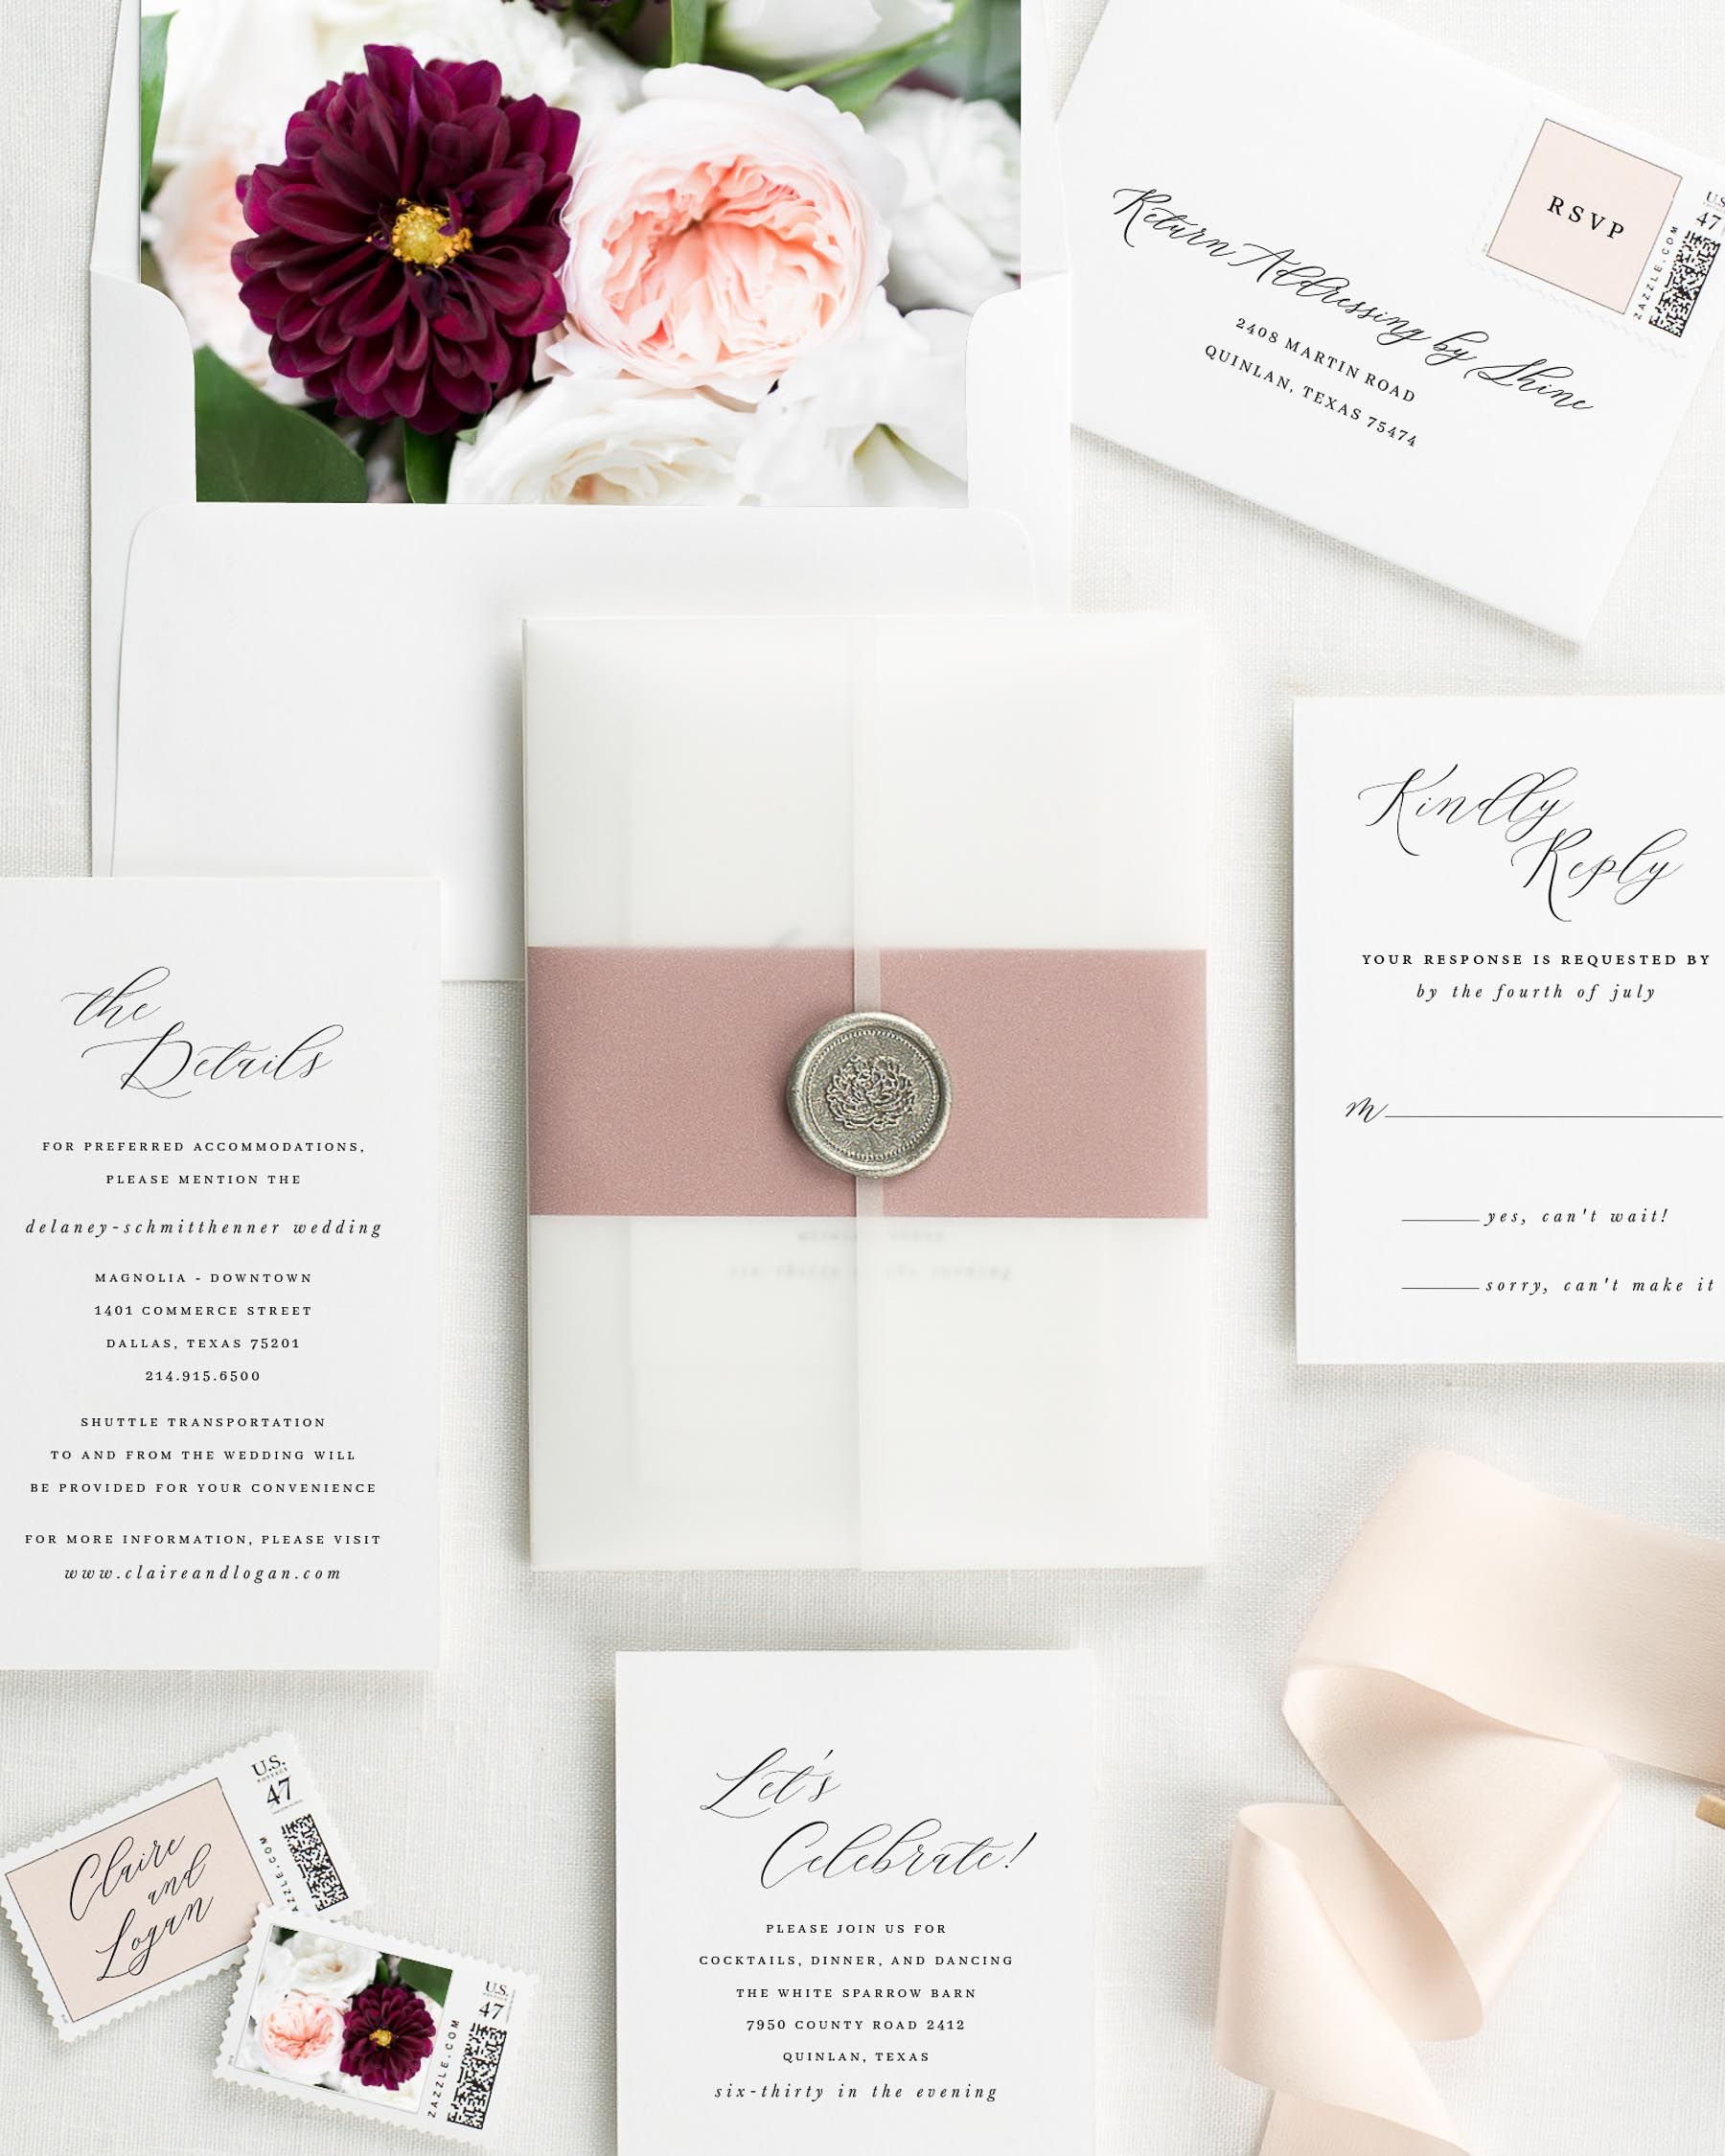 Claire Floral Wedding Invitations - Floral Wedding Invitations by Shine